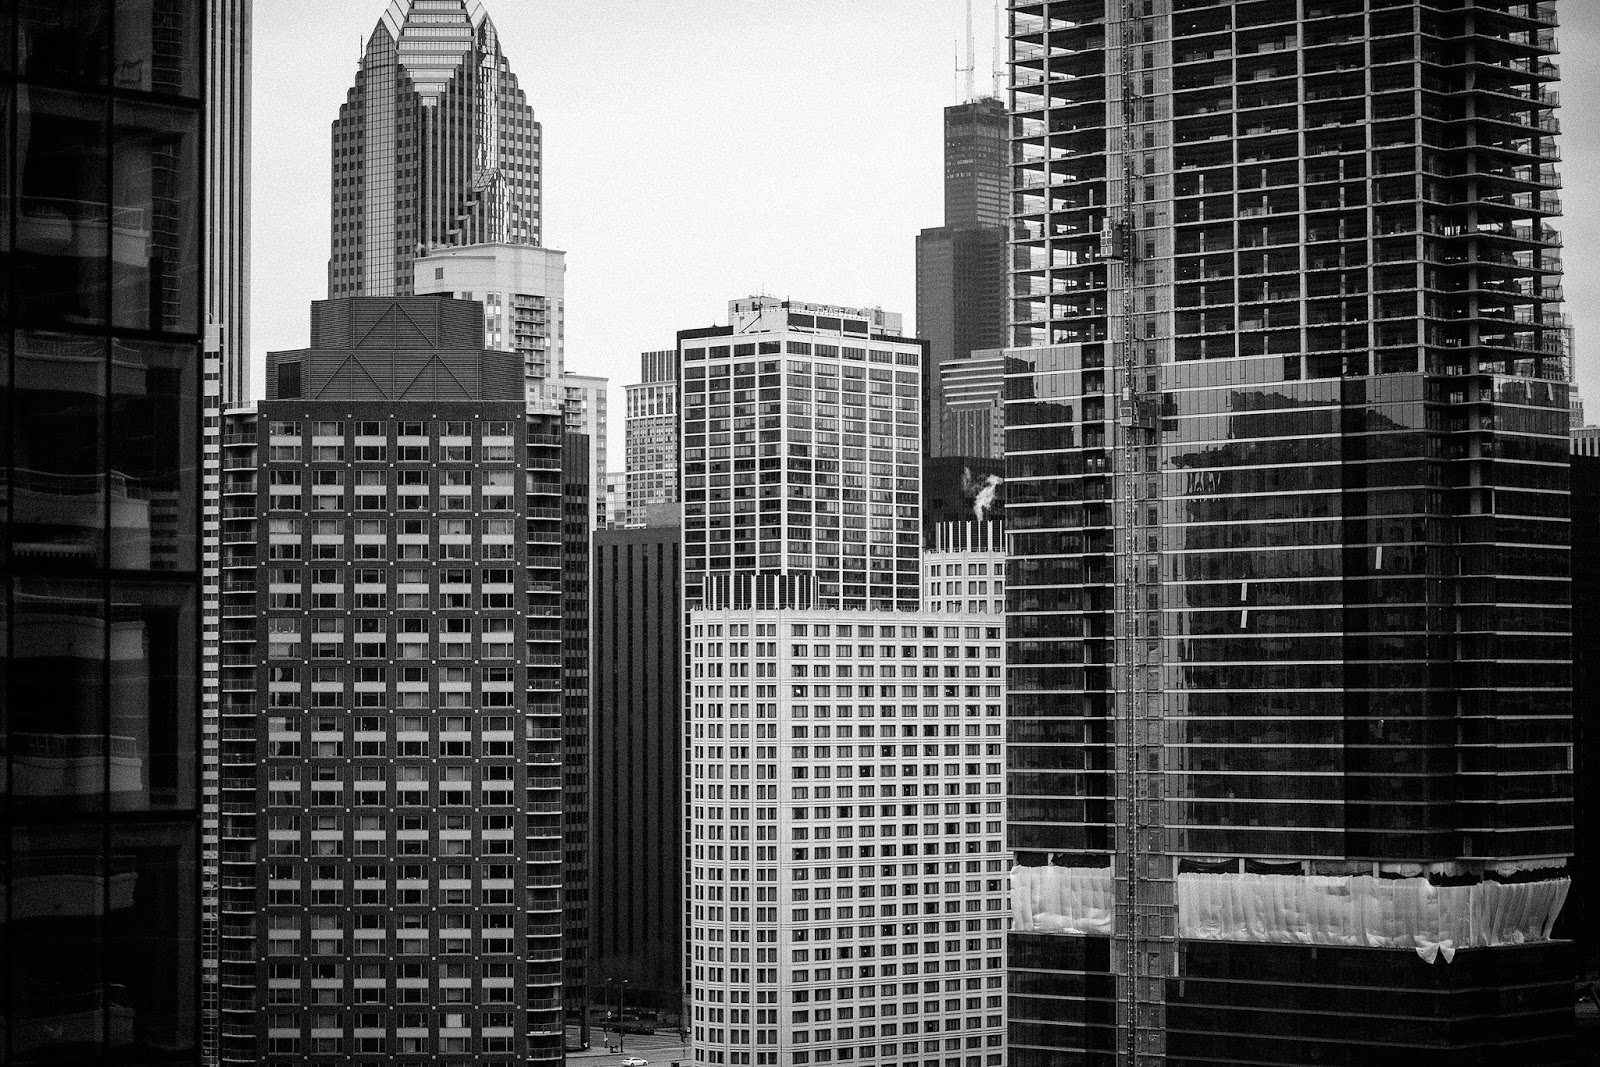 Black and White Chicago Cityscape